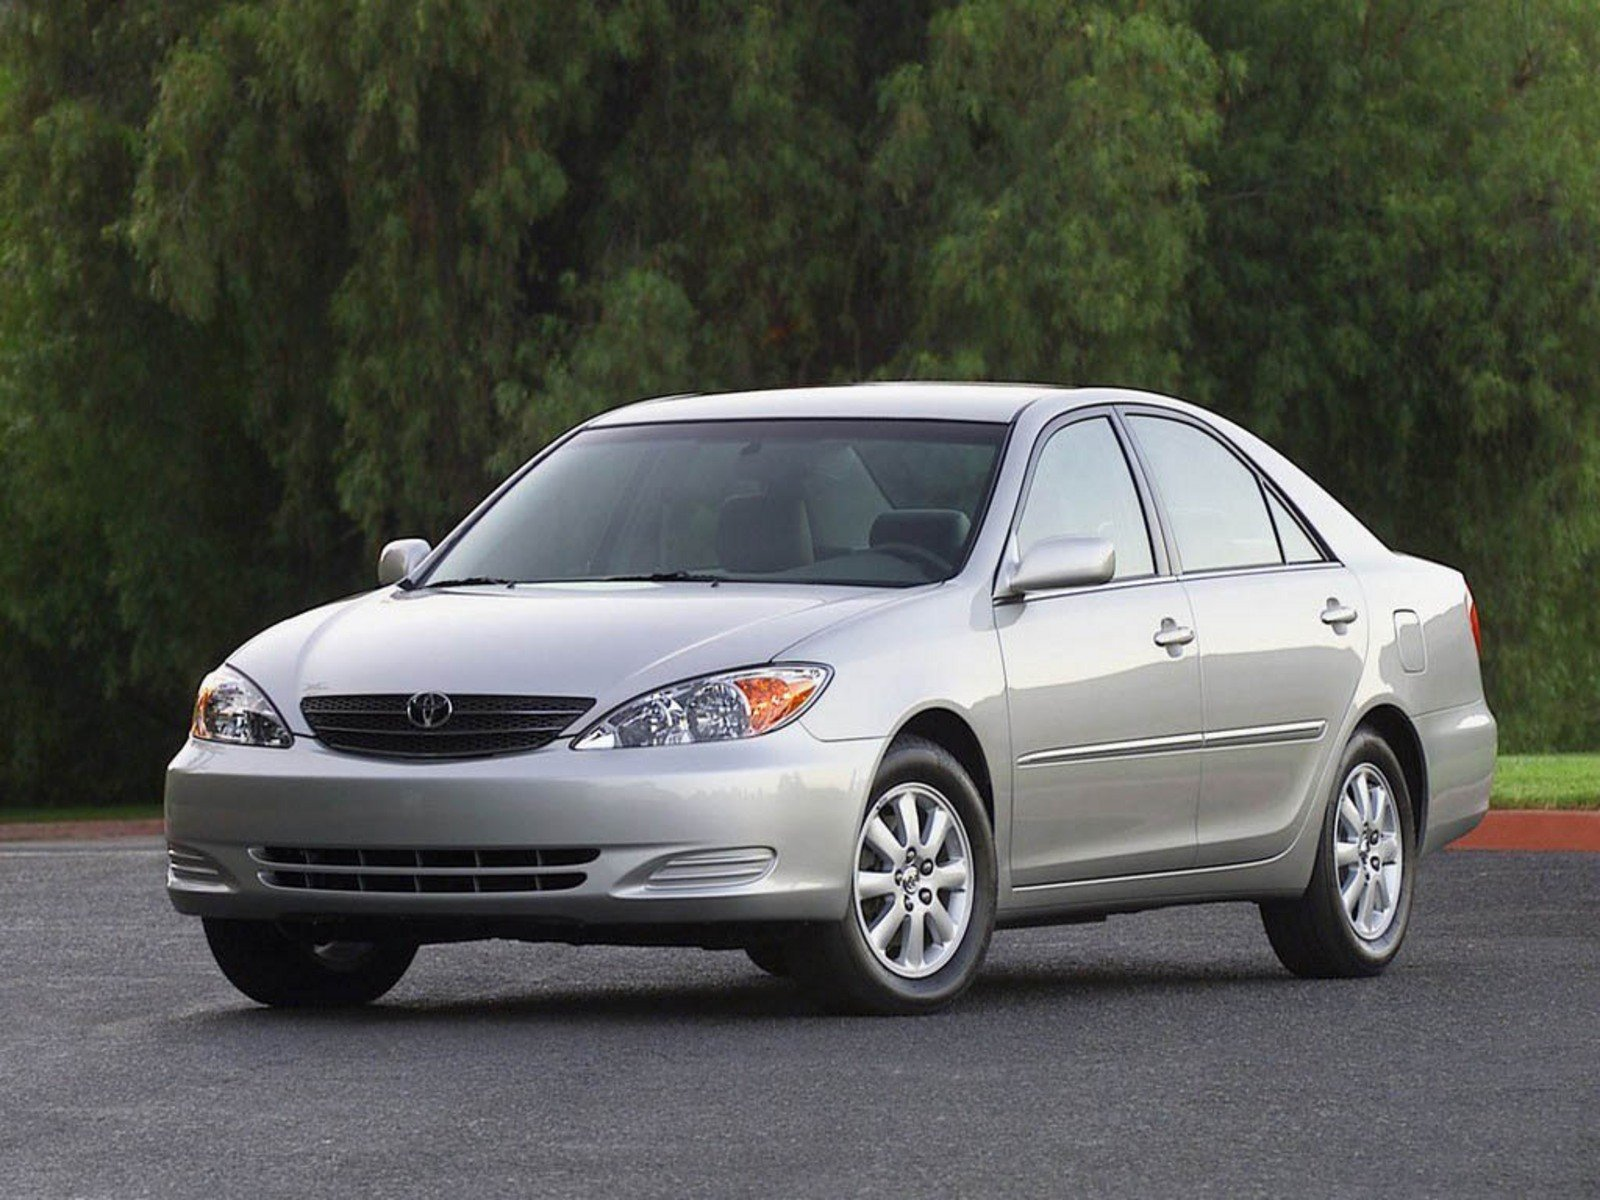 2006 toyota camry review gallery top speed. Black Bedroom Furniture Sets. Home Design Ideas